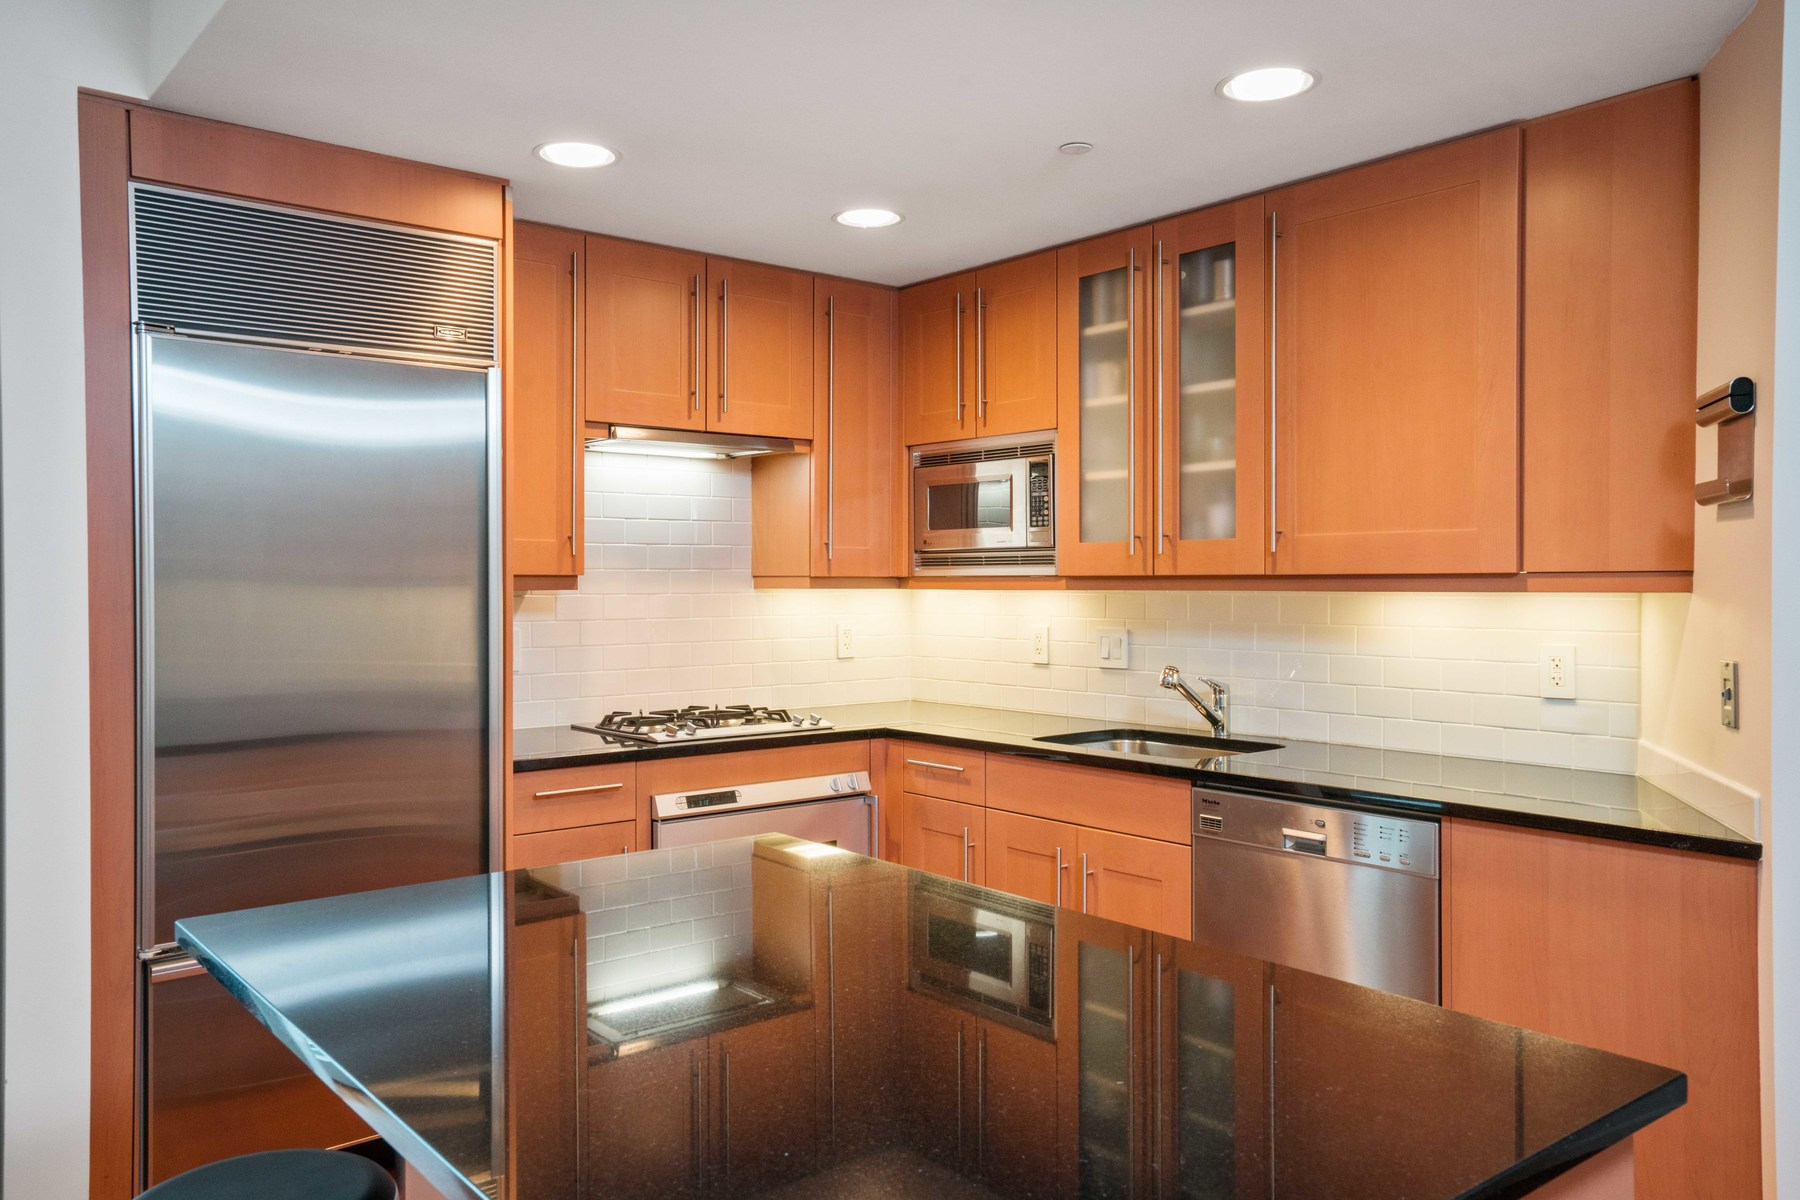 Additional photo for property listing at AtelierExceptional Opportunity 505 Tremont Street unit 612 Boston, Massachusetts 02116 United States